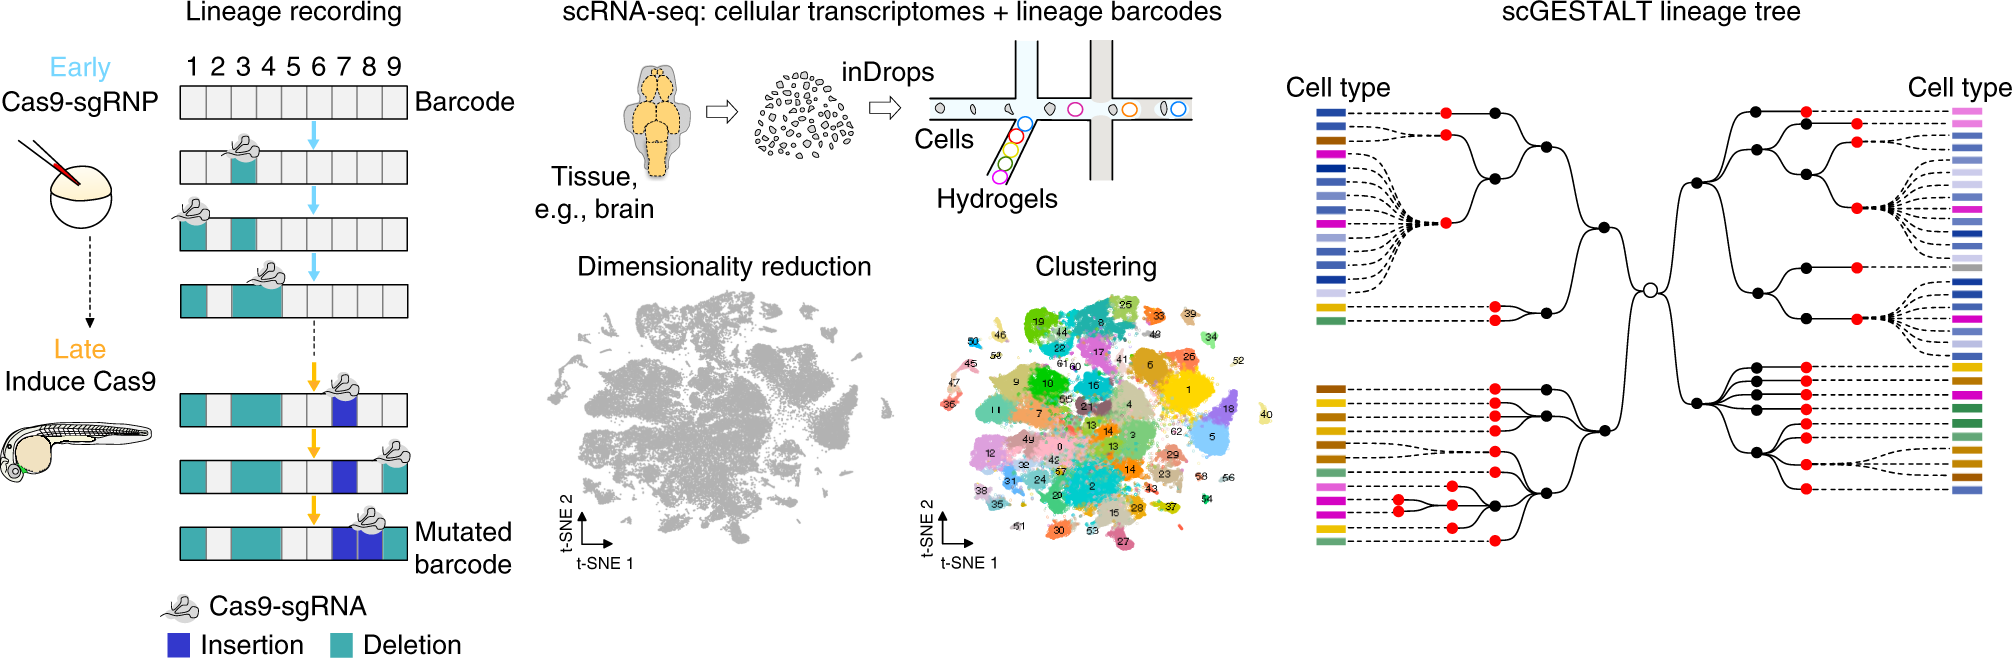 Large-scale reconstruction of cell lineages using single